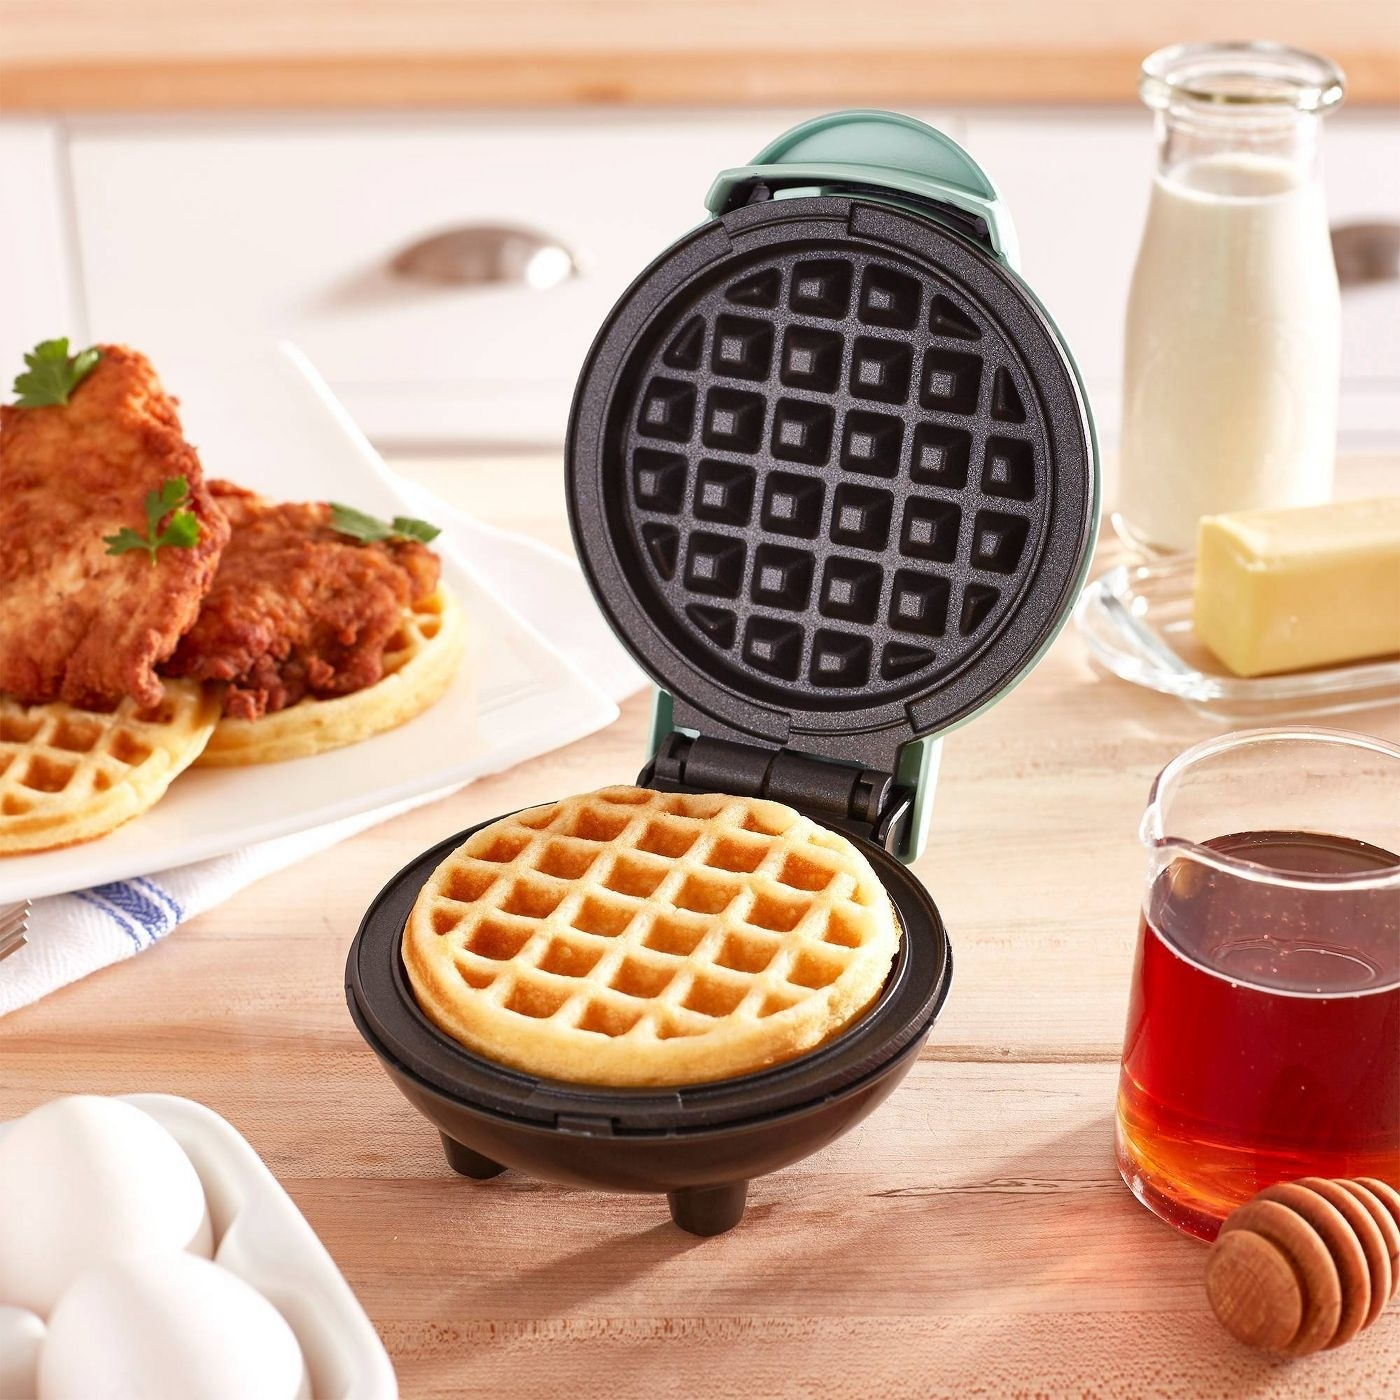 The mini waffle maker opened and finished making a waffle to show its size